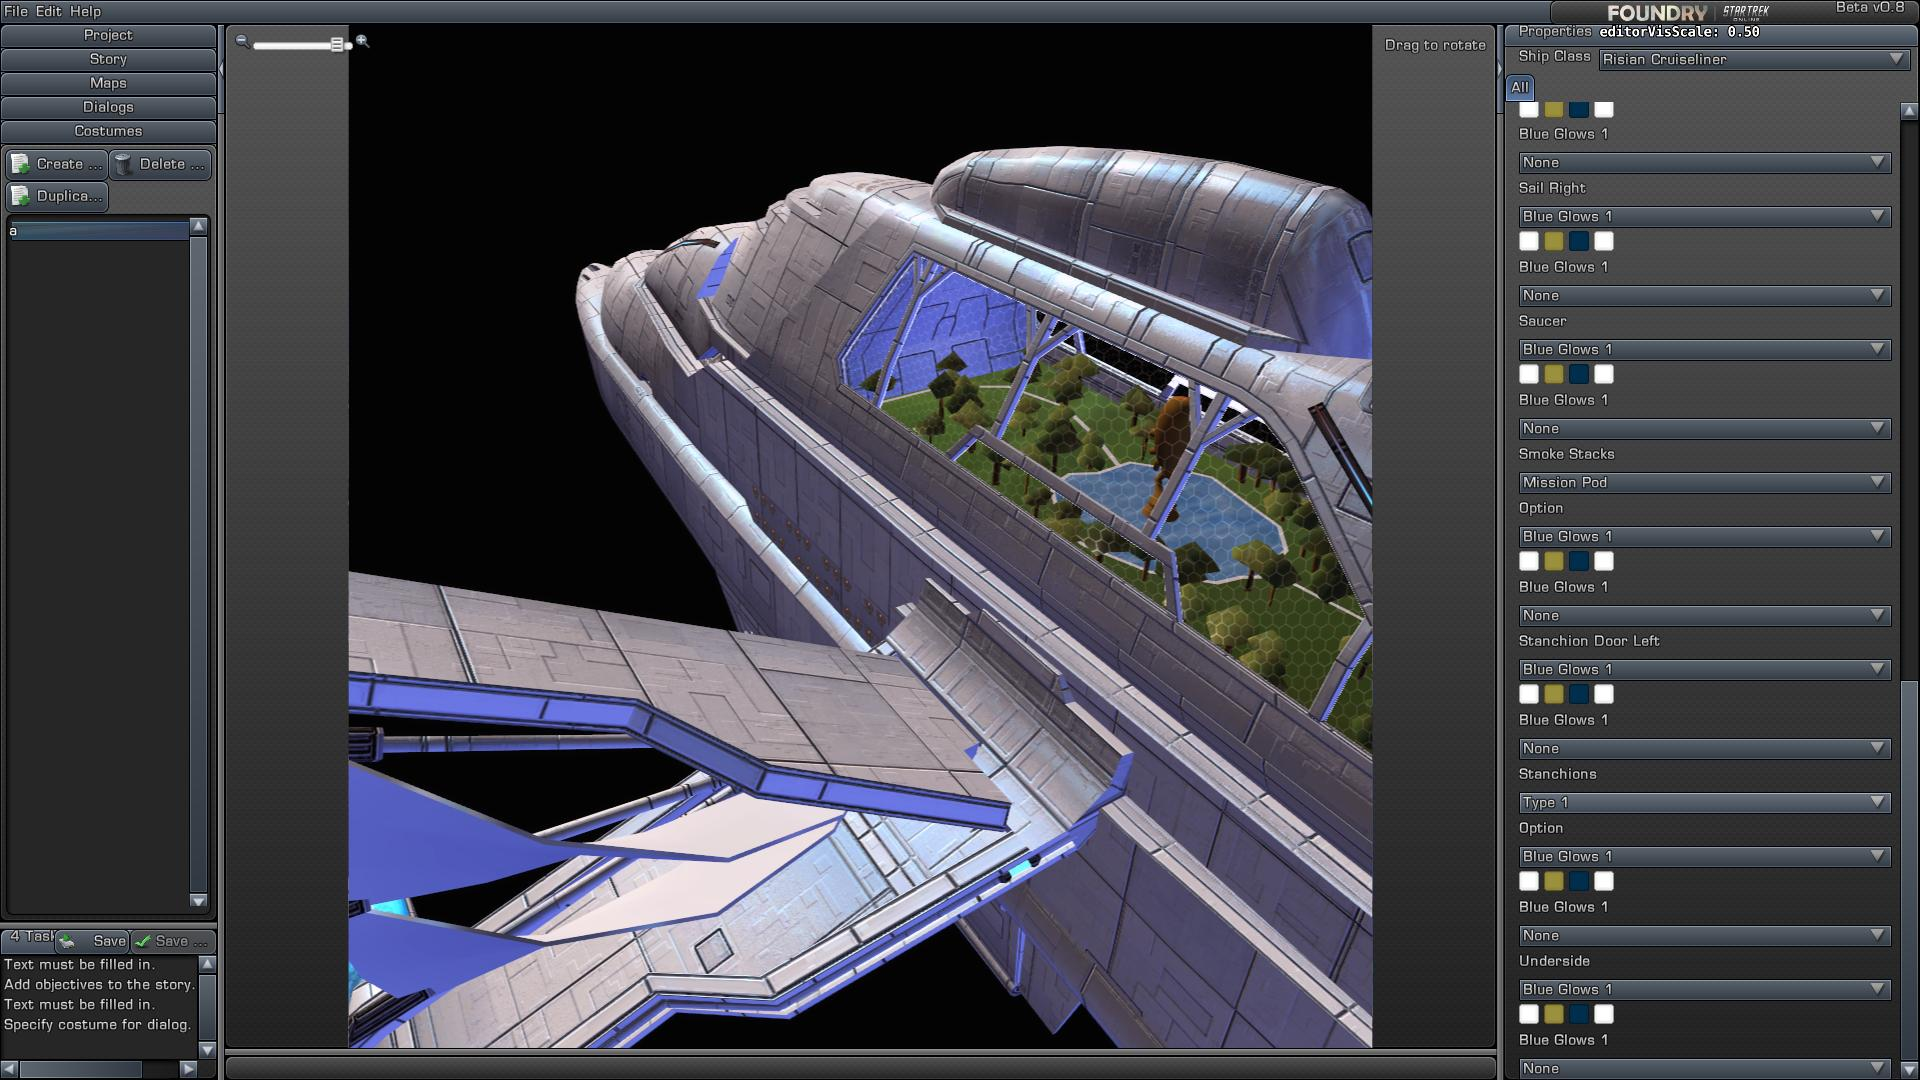 Star Trek Online Risan Cruise Liner Star Trek Gaming